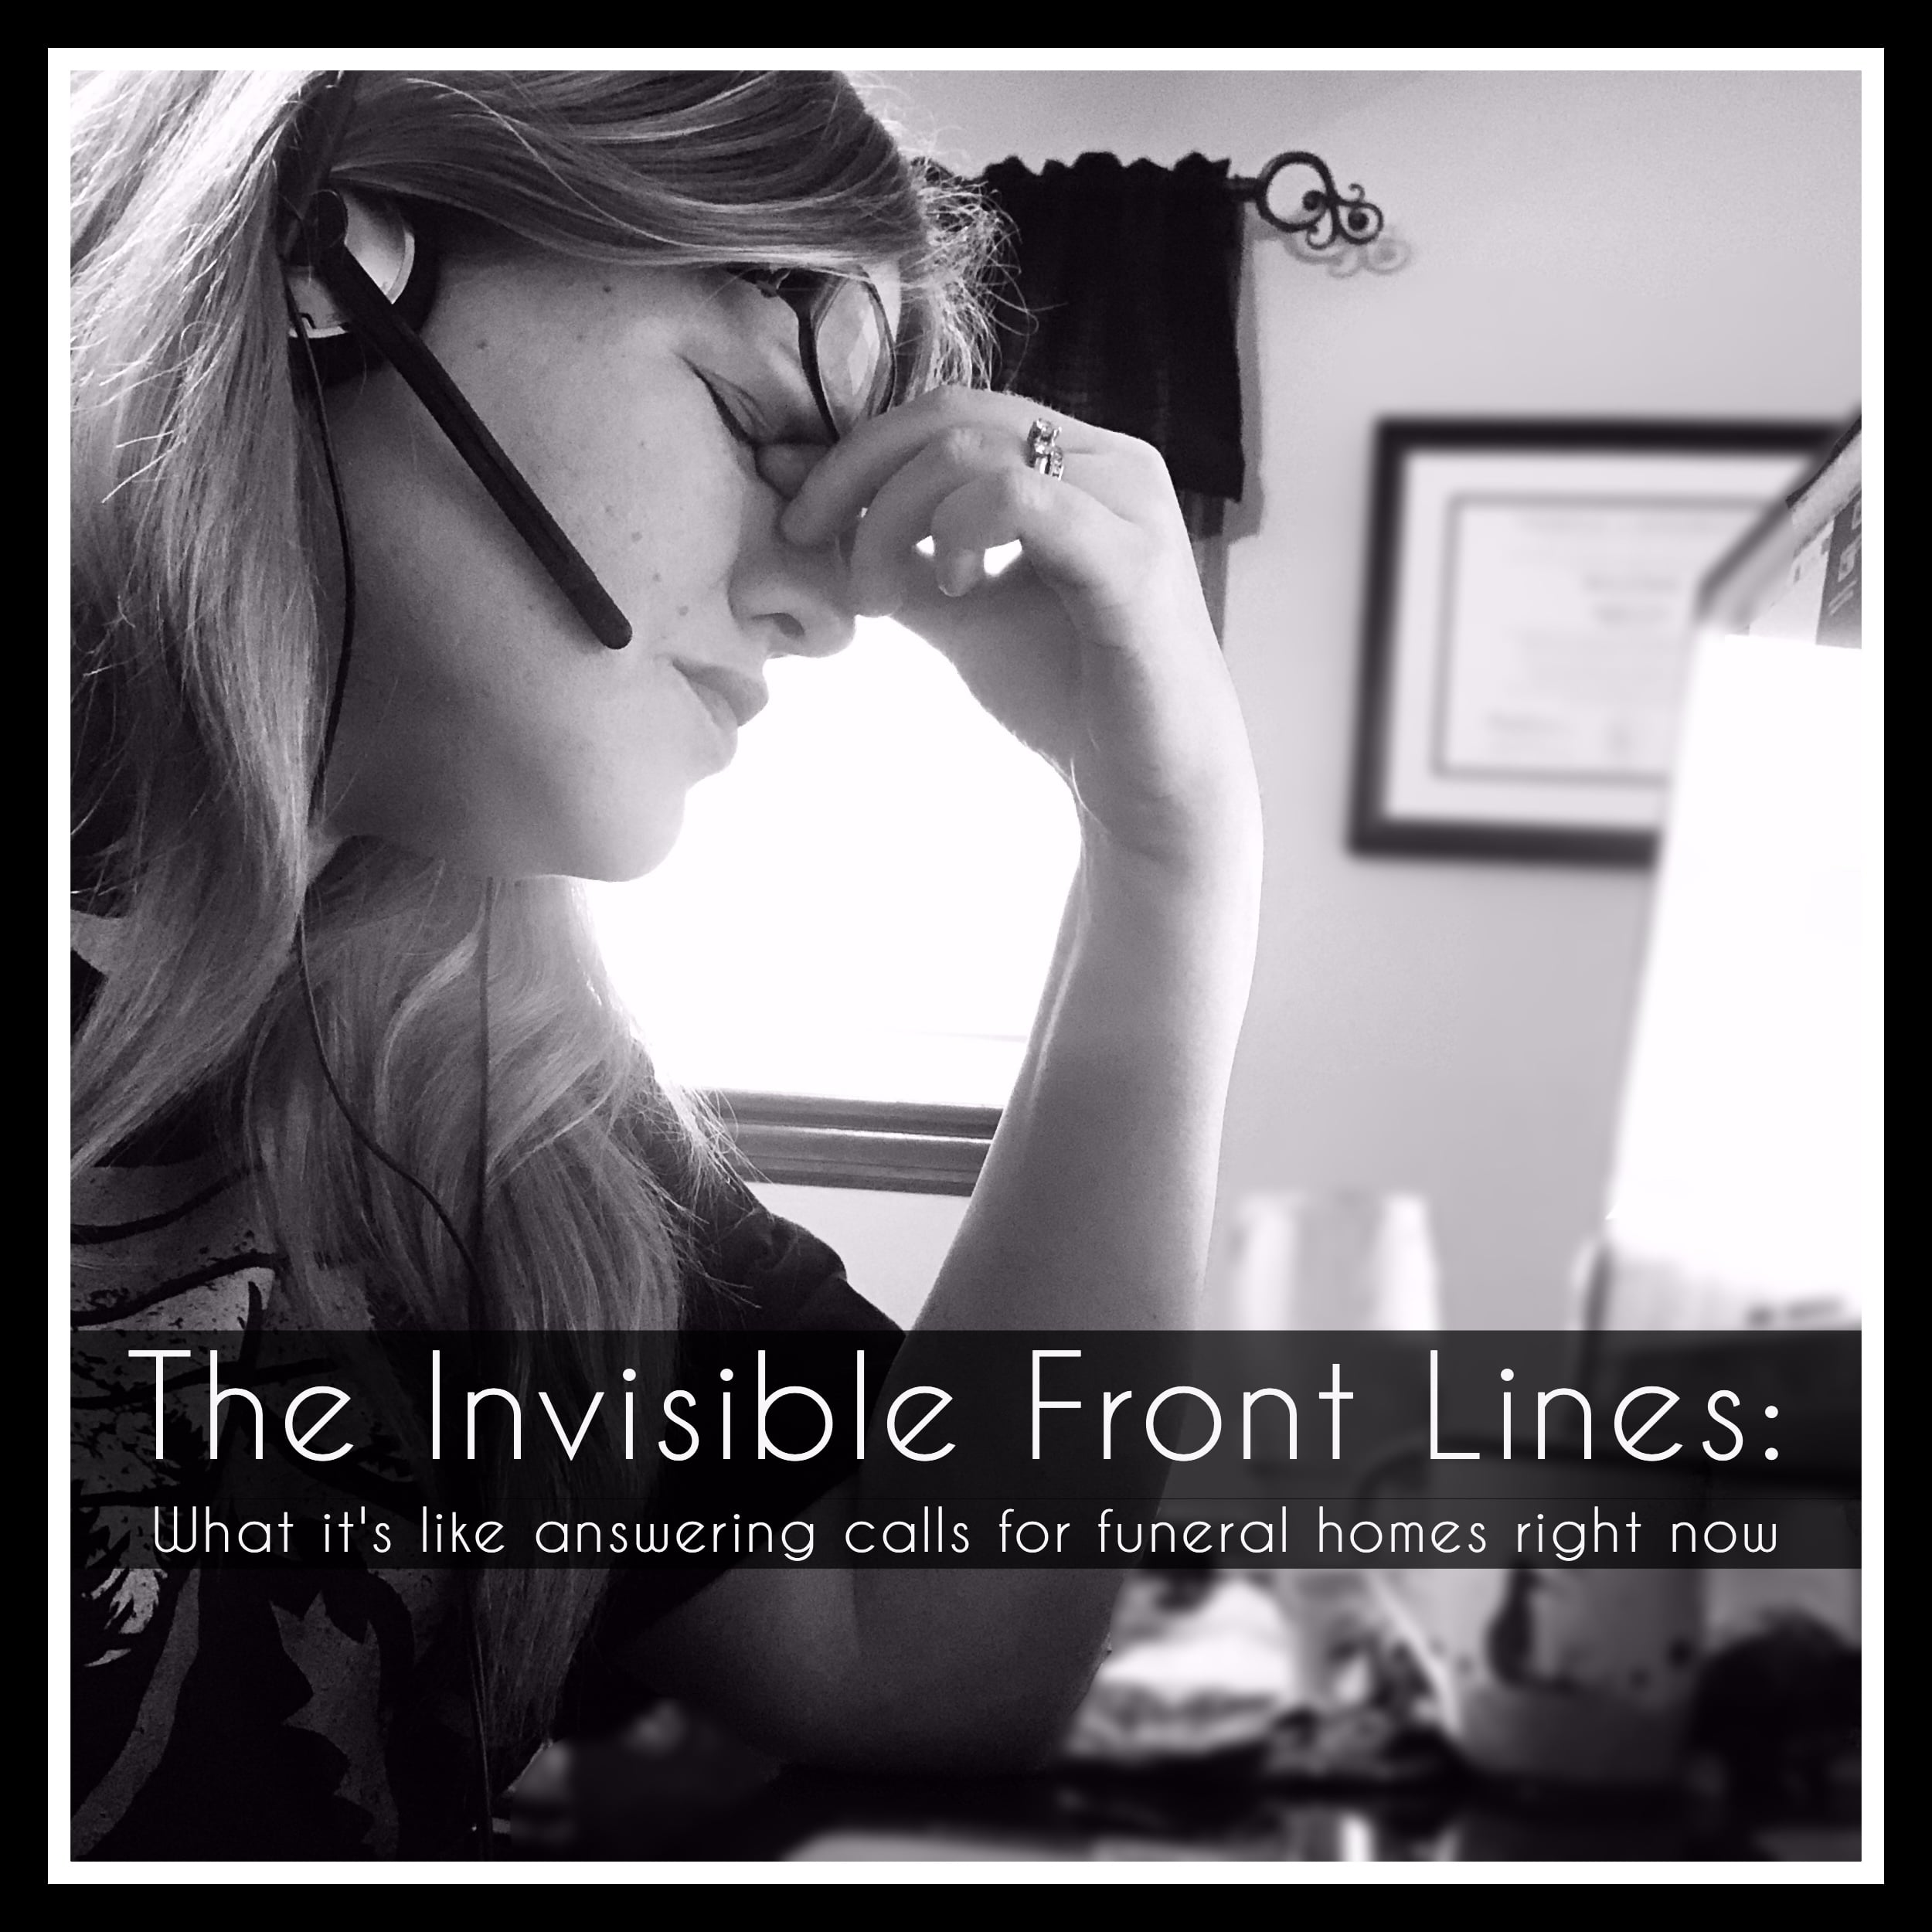 The Invisible Front Lines: What it's like answering calls for funeral homes right now